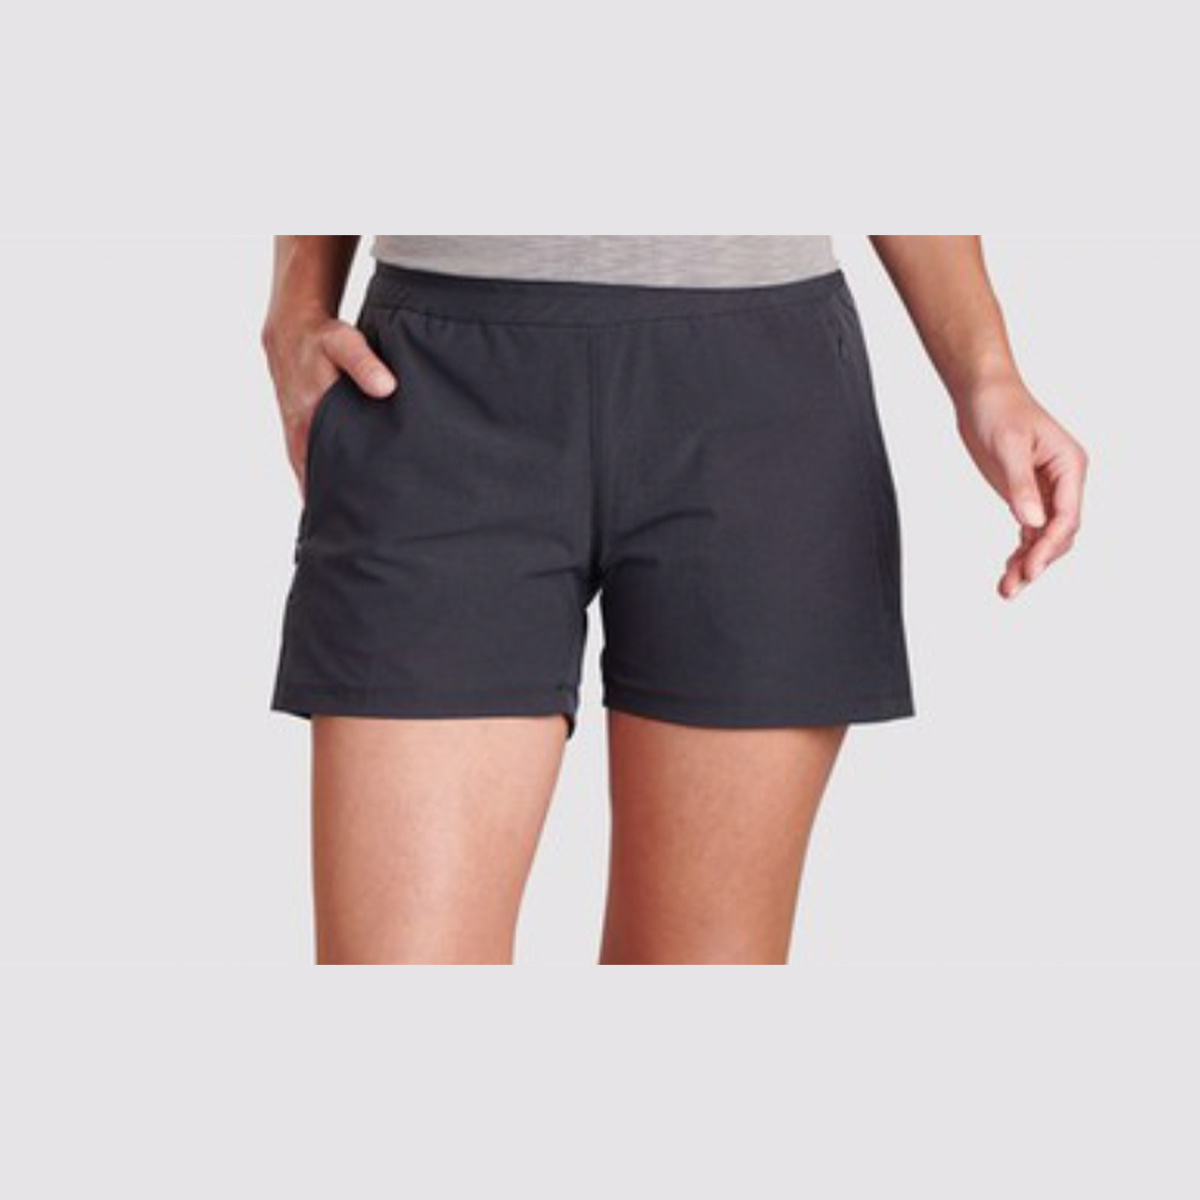 Kuhl Women's Freeflex Short 8""